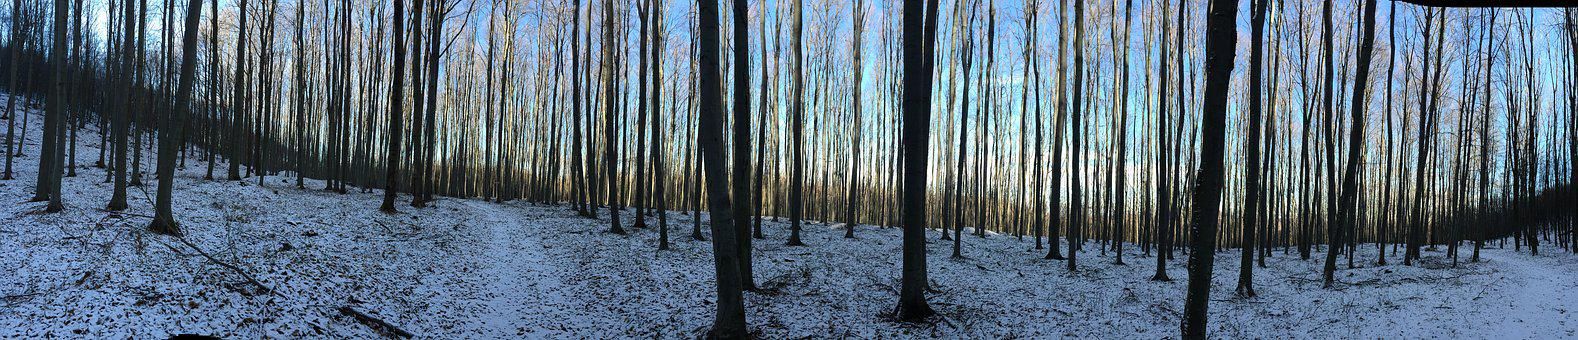 Panorama-like, Nature, Landscape, Forest, Beech